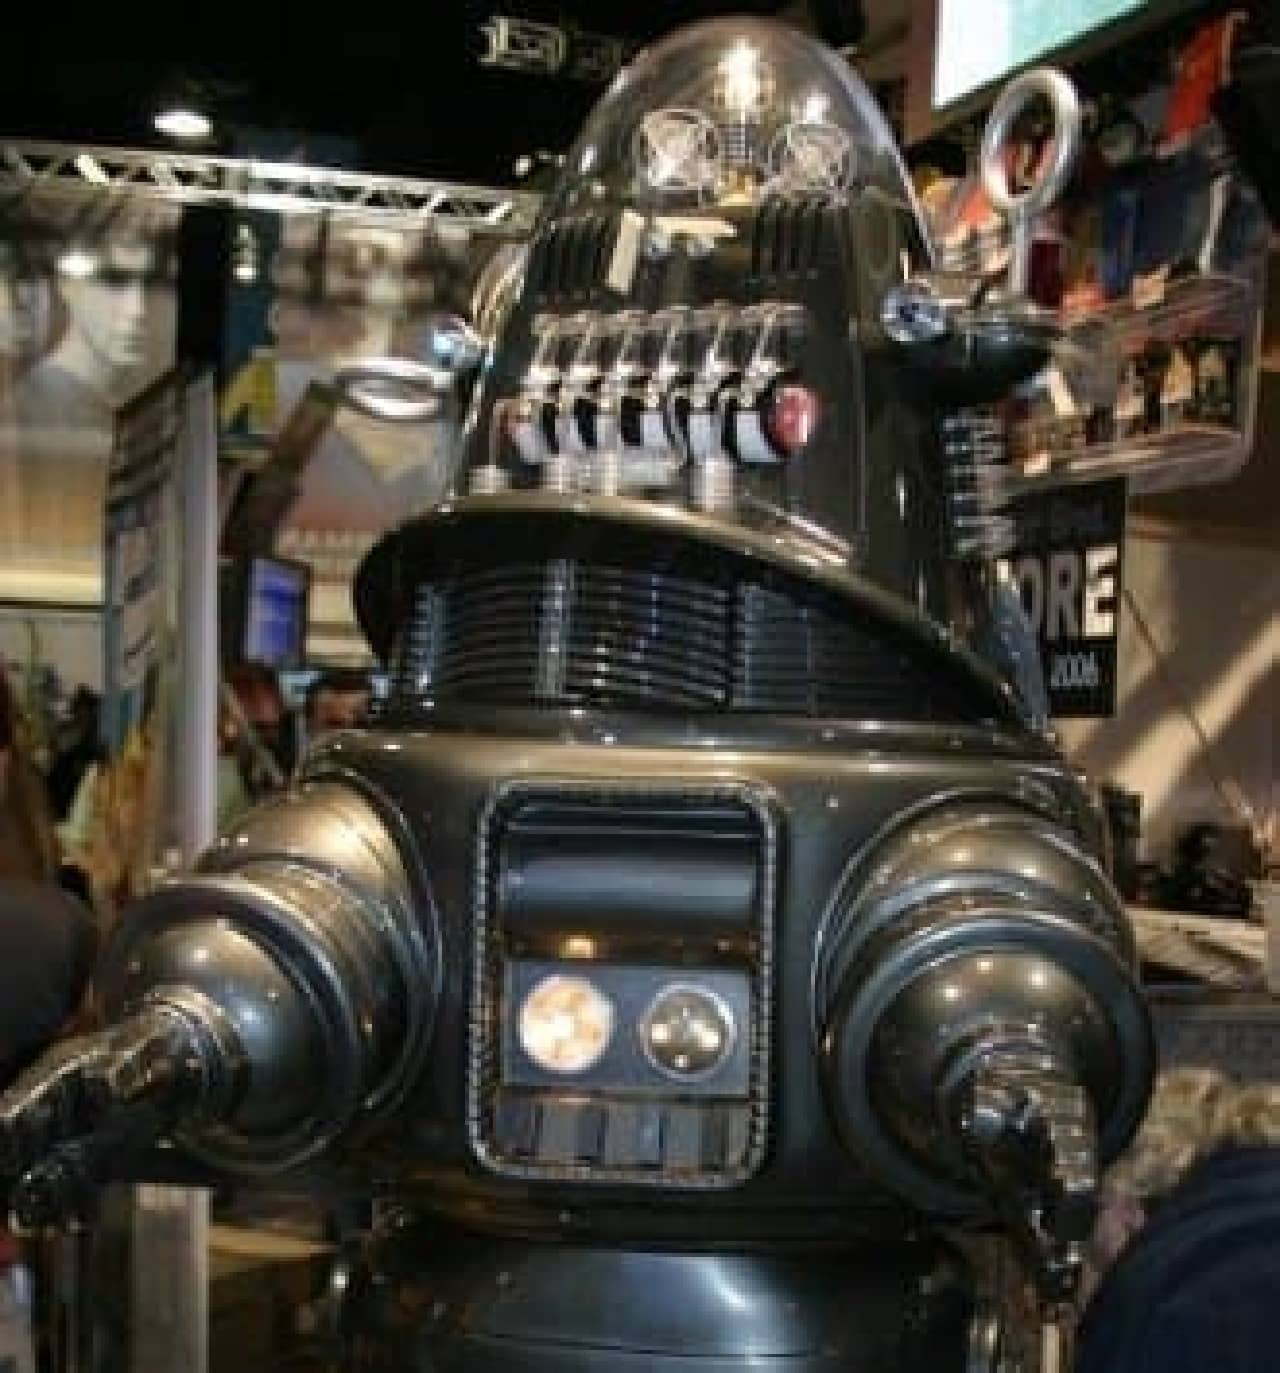 参考画像:『禁断の惑星』に登場する「Robby the Robot」 (Crystal Pyramid ProductionsのPatty Mooney 氏が2006年のSan Diego Comic Conで撮影)